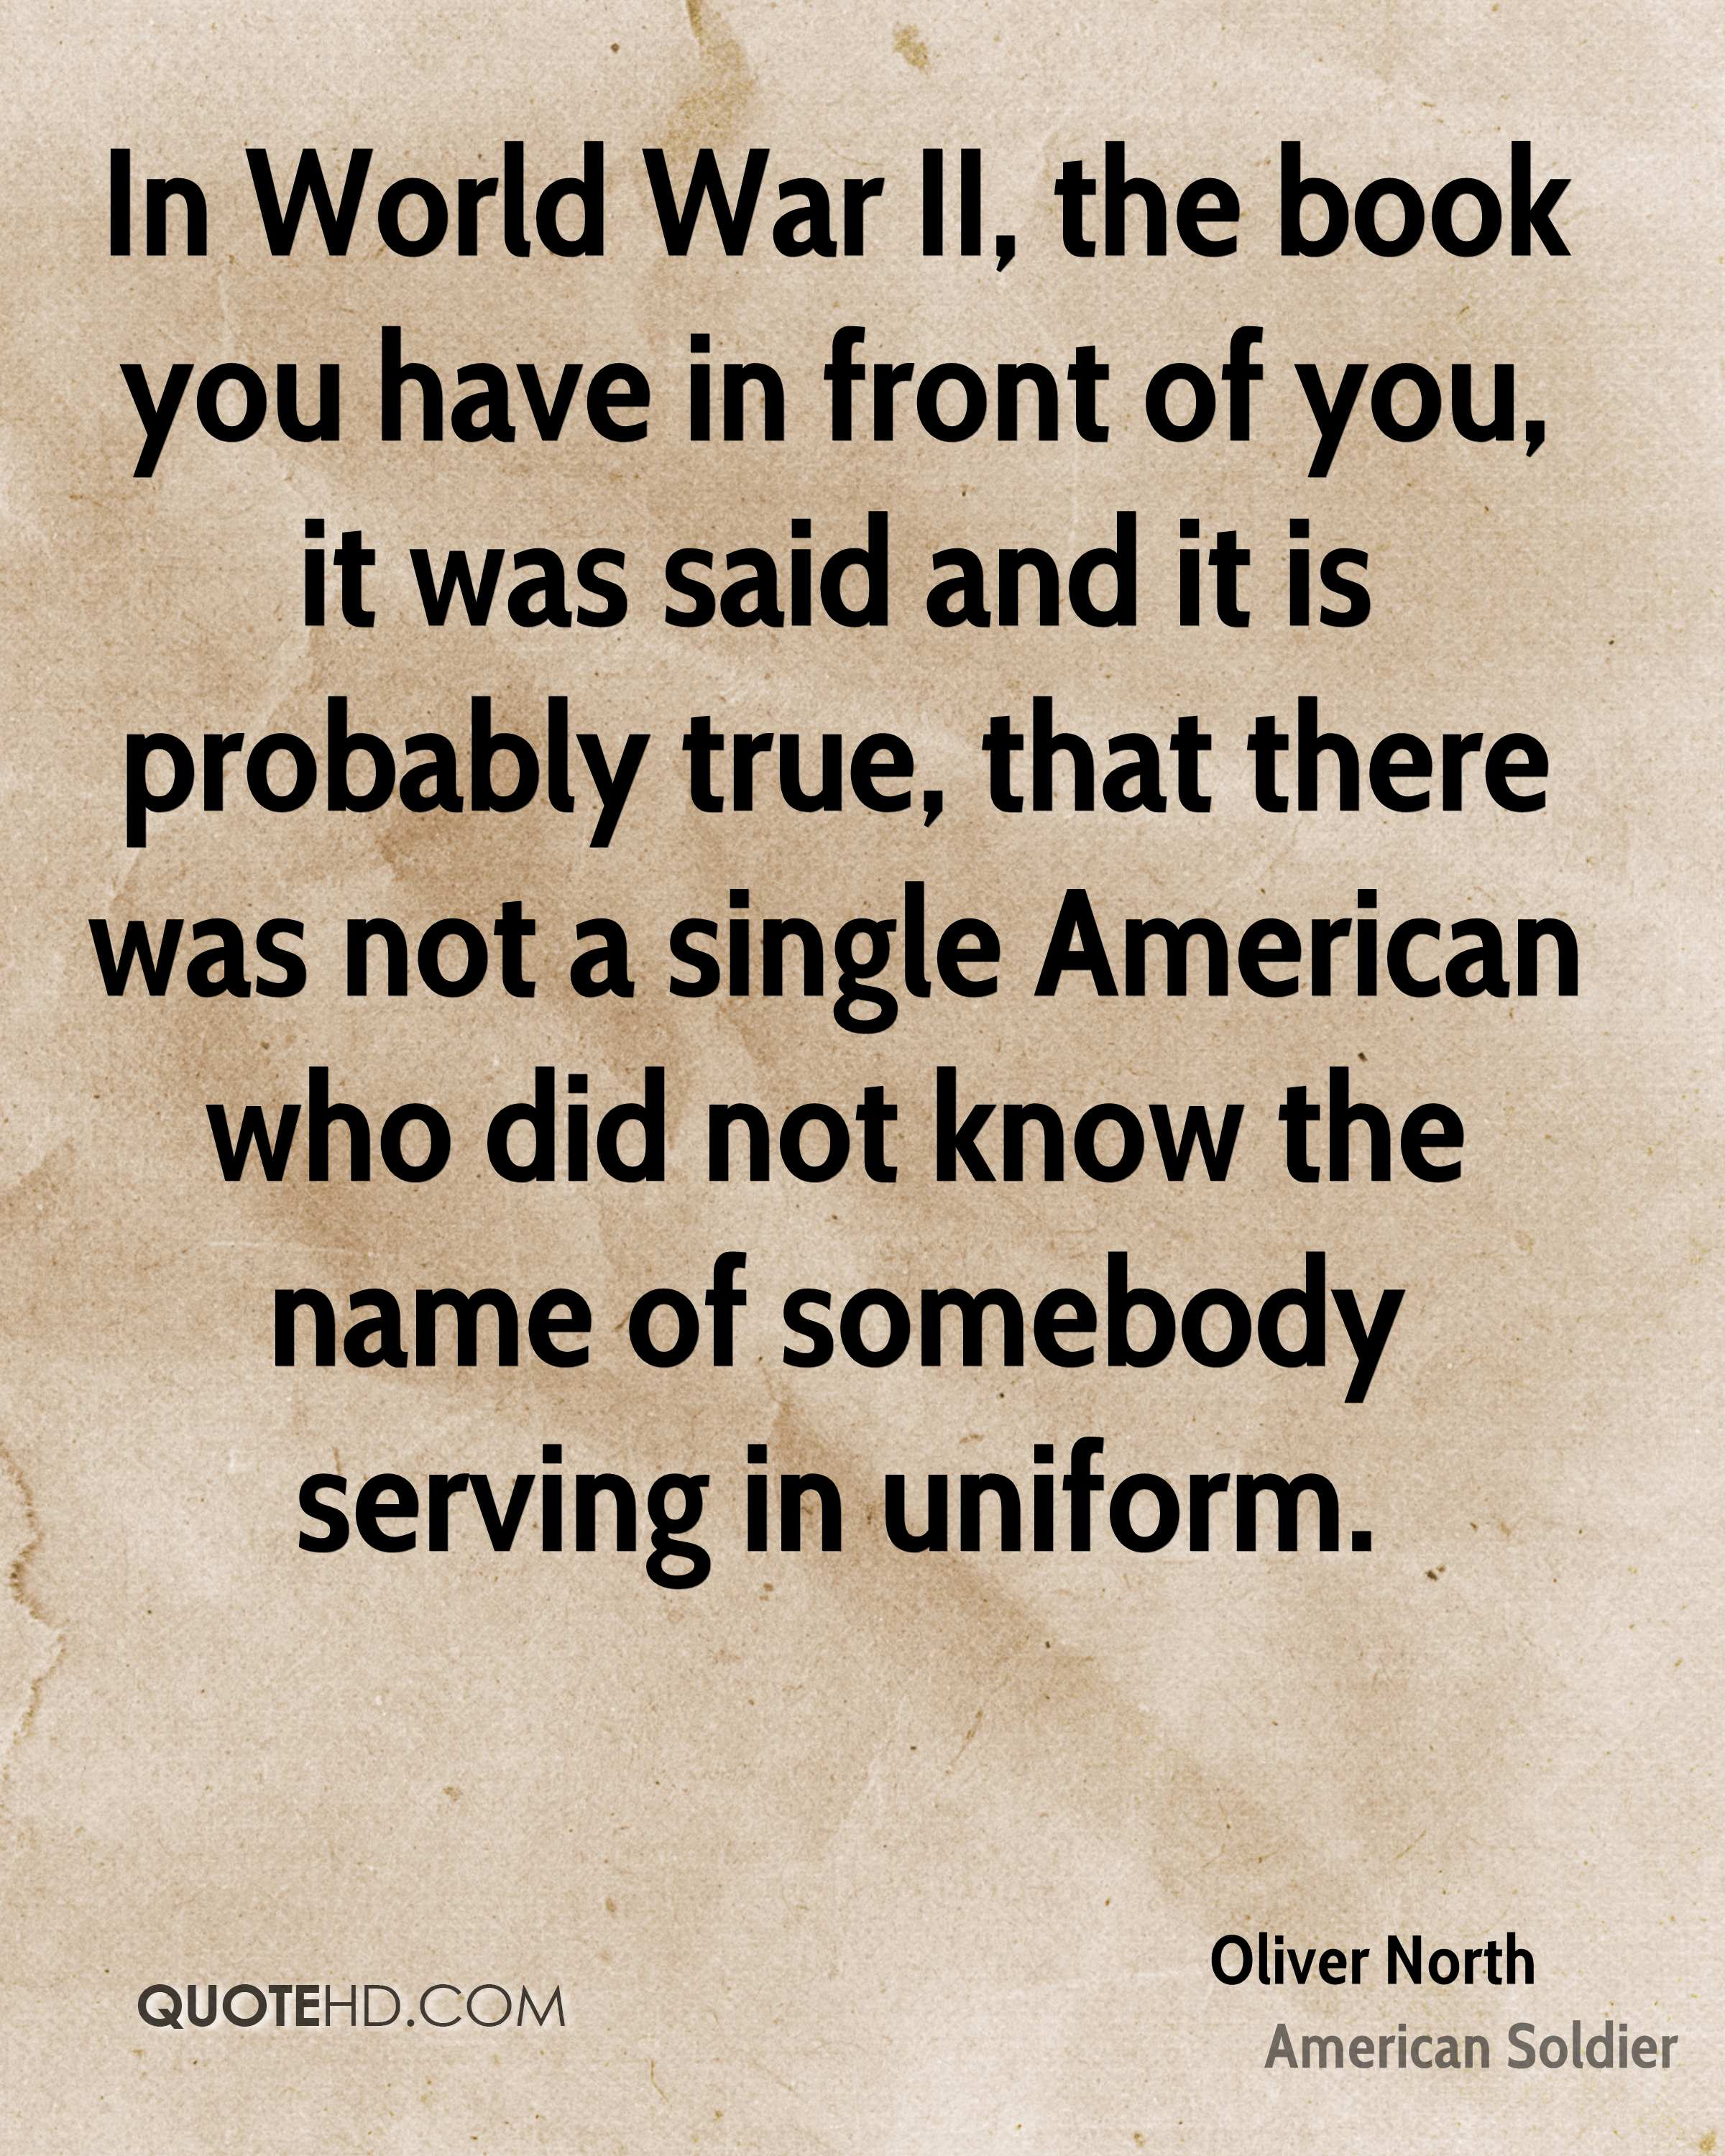 In World War II, the book you have in front of you, it was said and it is probably true, that there was not a single American who did not know the name of somebody serving in uniform.